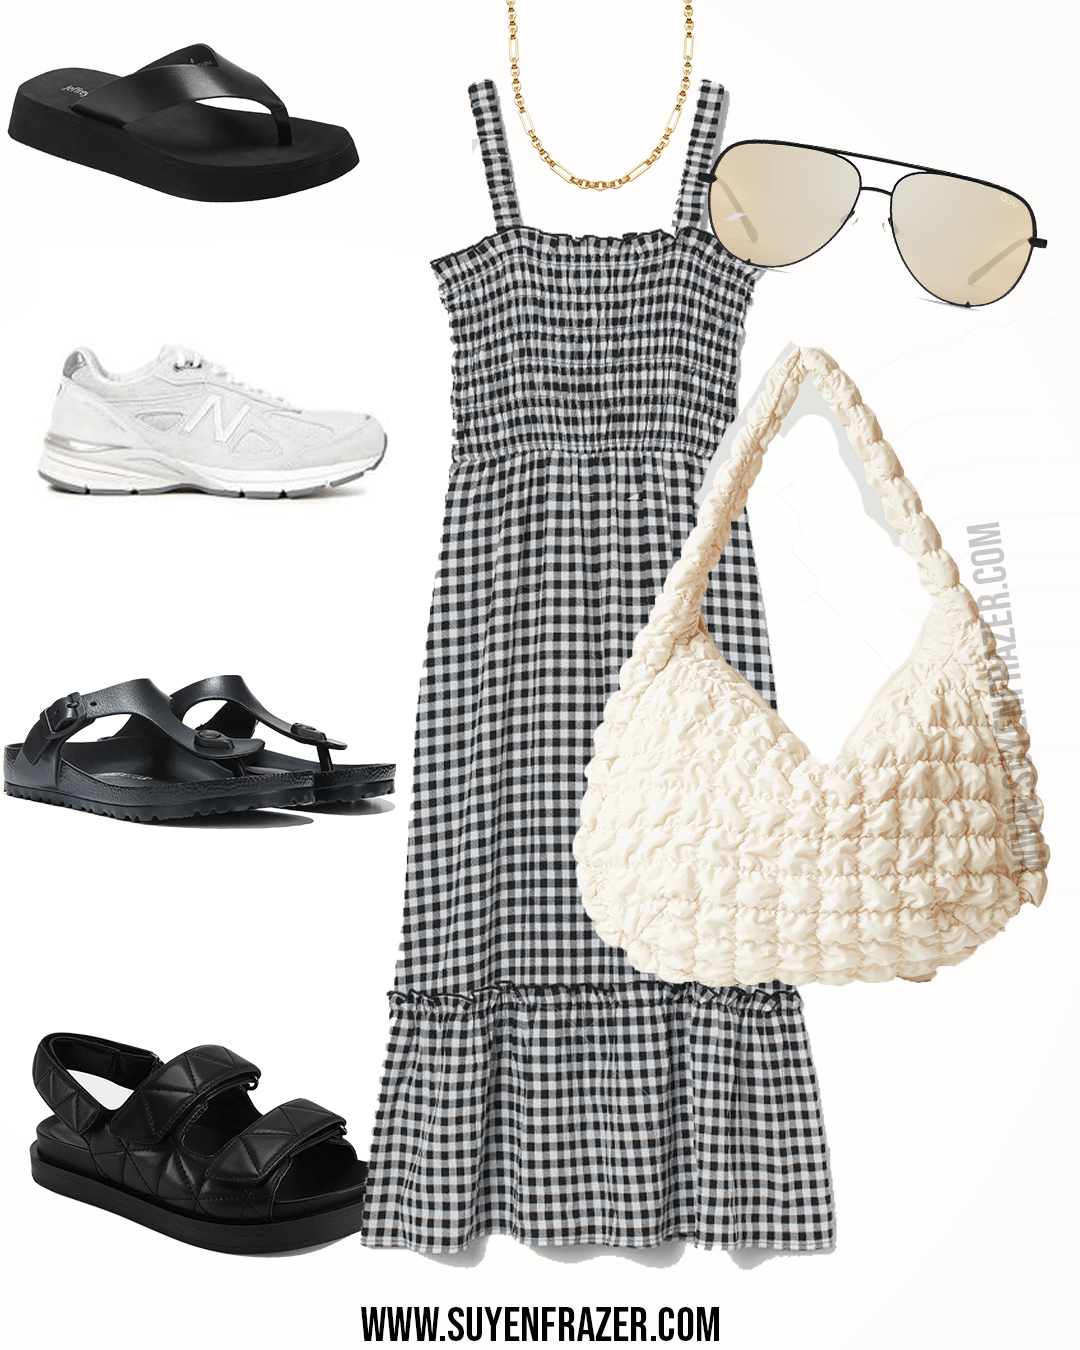 Plus-size Summer Dress Black And White Outfit